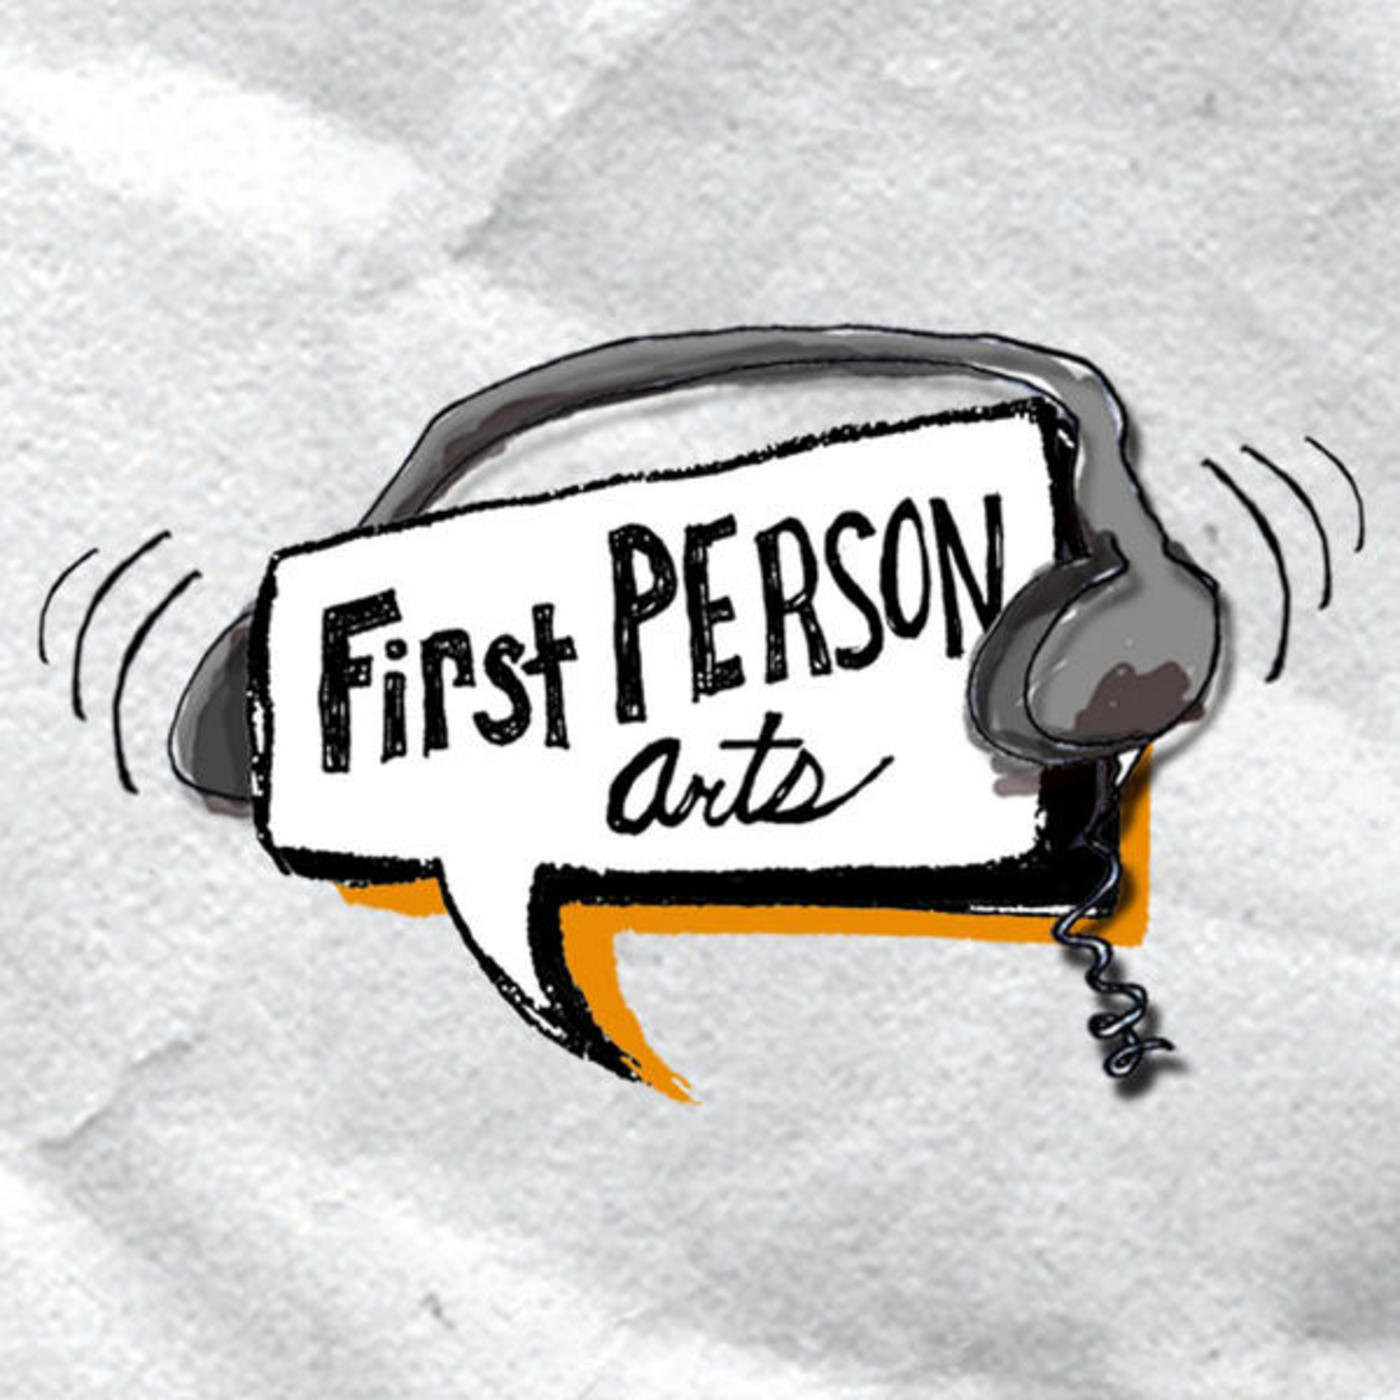 #1 Unibrows, an Arranged Marriage, and True Love – First Person Arts Podcast Rewind